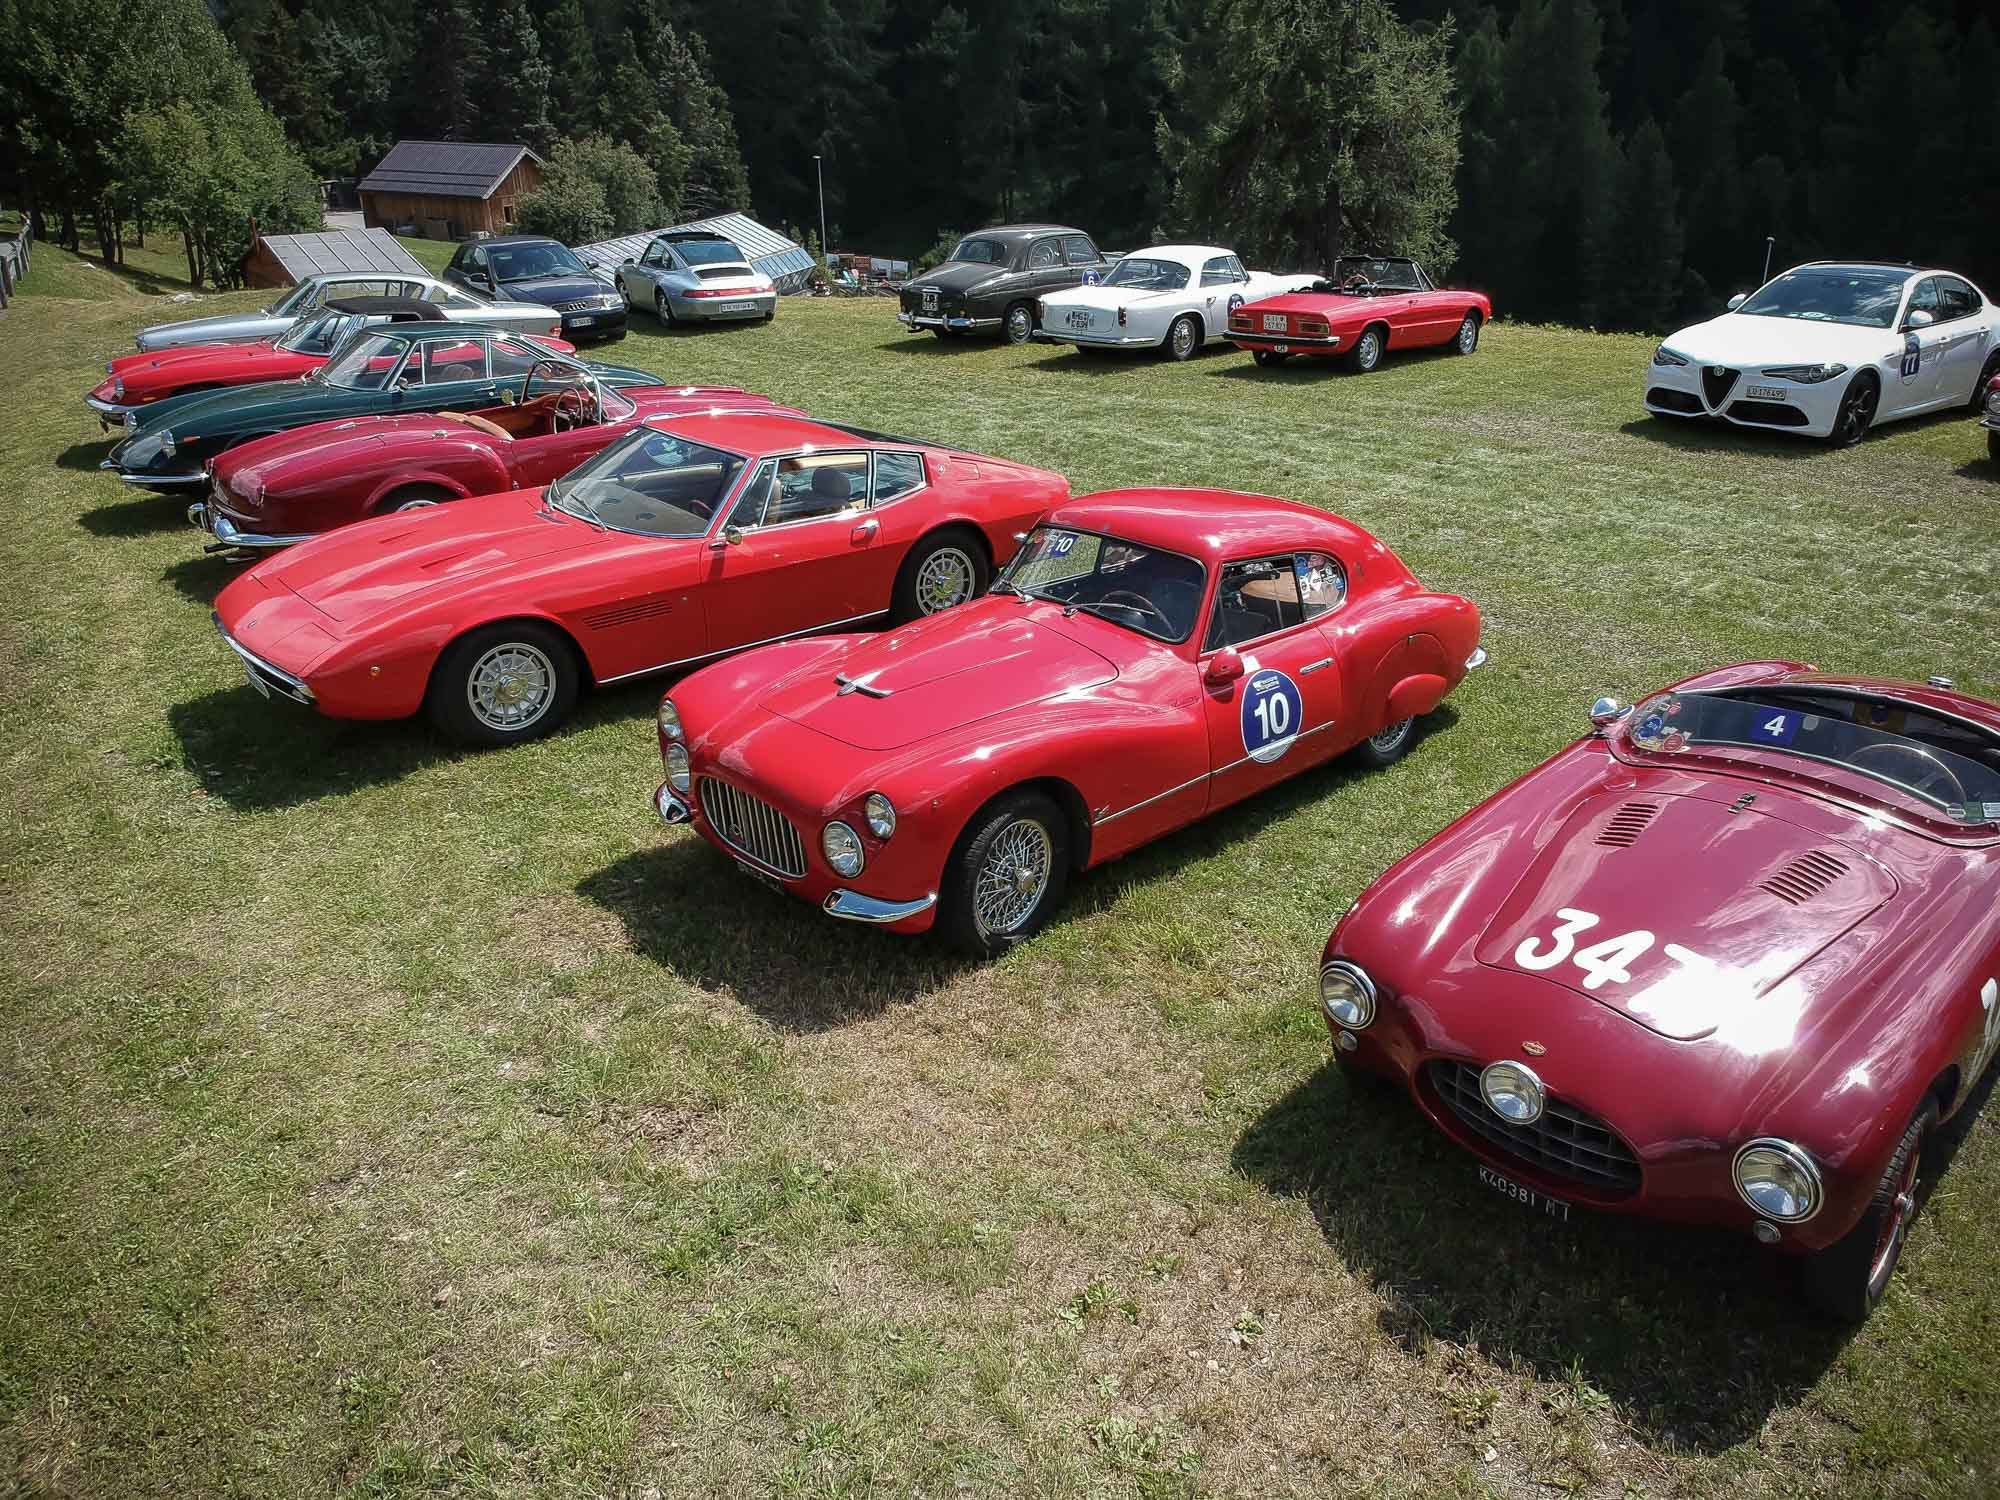 jaeger-lecoultre-x-passione-engadina-event-report-photo-by-Guillaume-Cassez